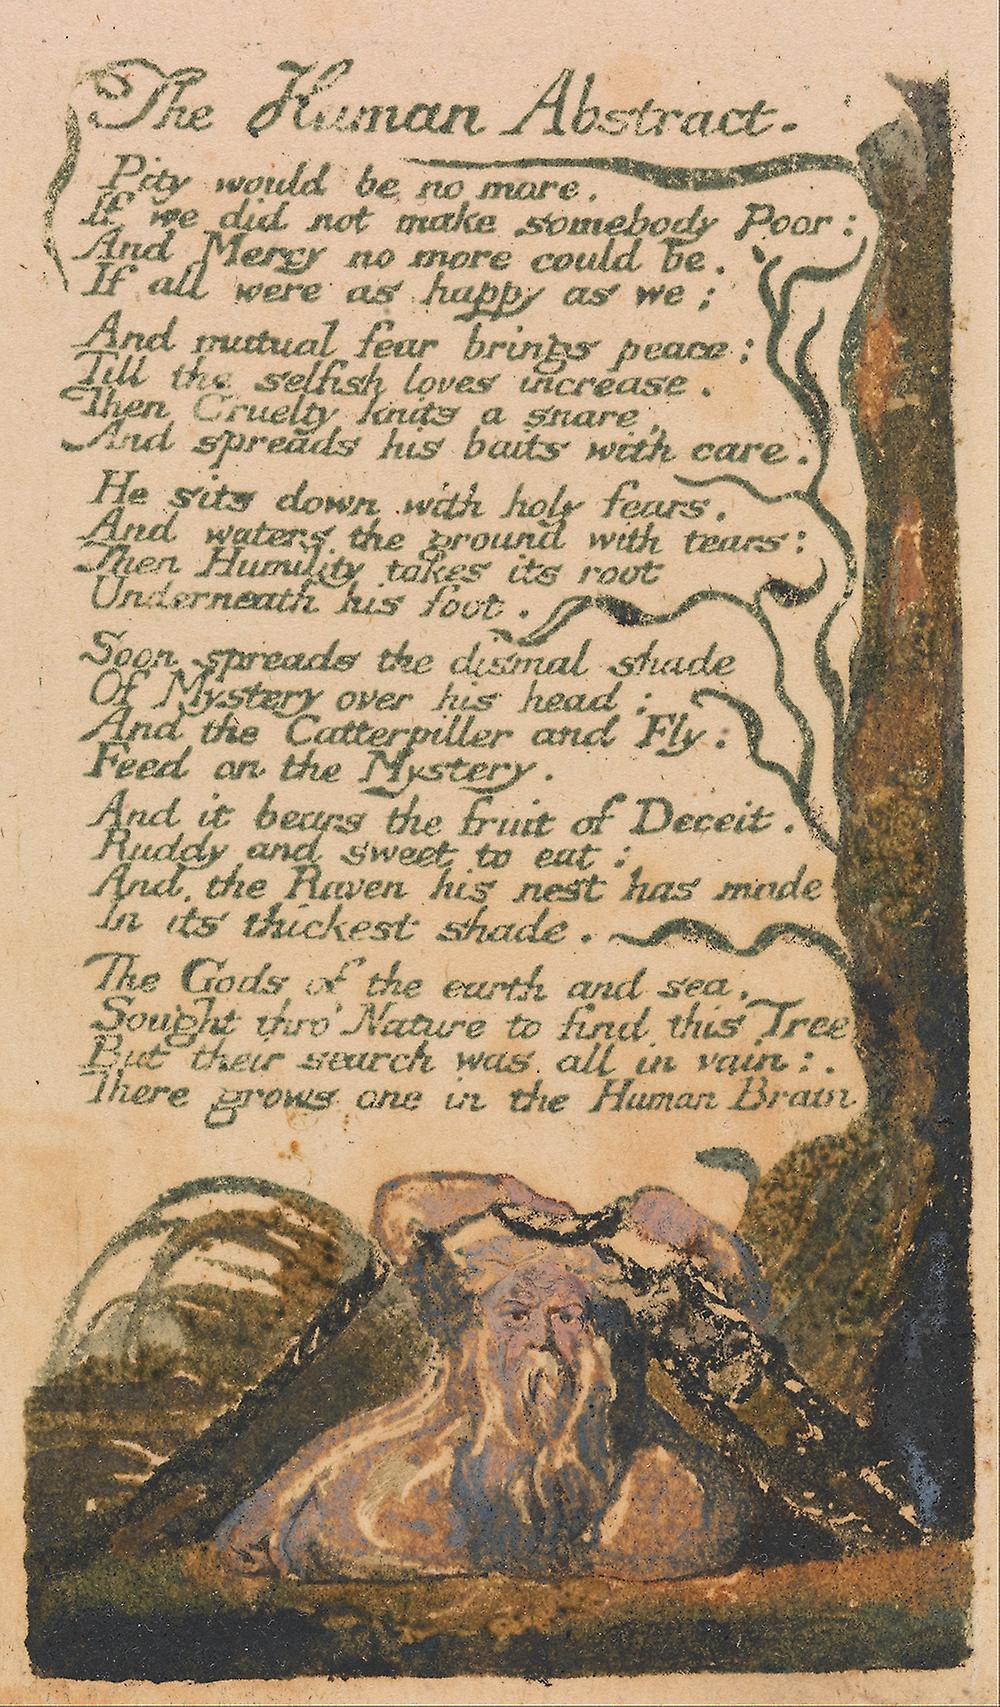 an overview of the romantic traits in the human abstract by william blake A divine image by william blake cruelty has a human heart and jealousy a human face terror the human form divine and secresy the human characteristics.